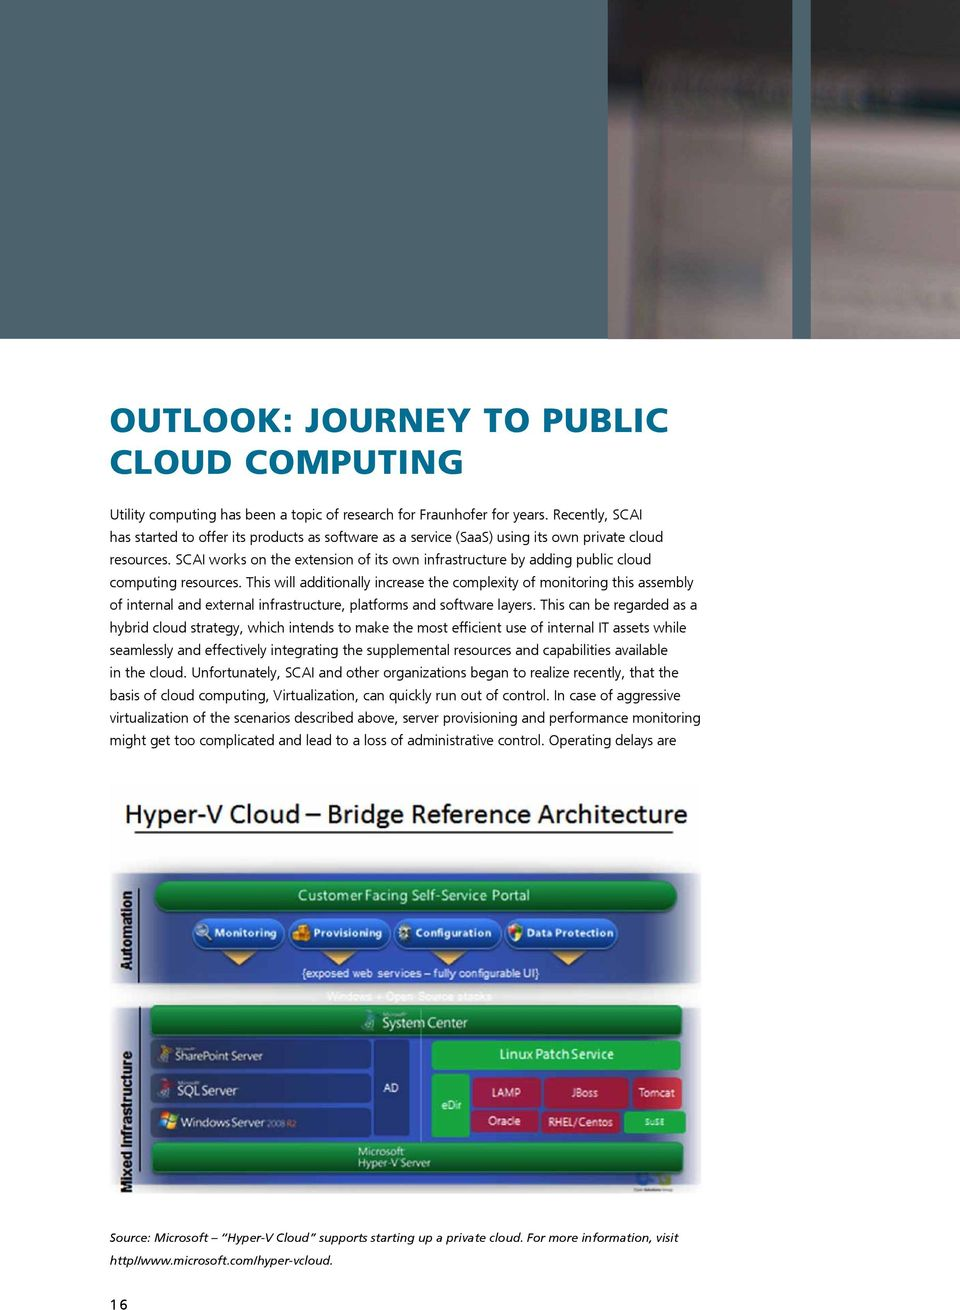 SCAI works on the extension of its own infrastructure by adding public cloud computing resources.